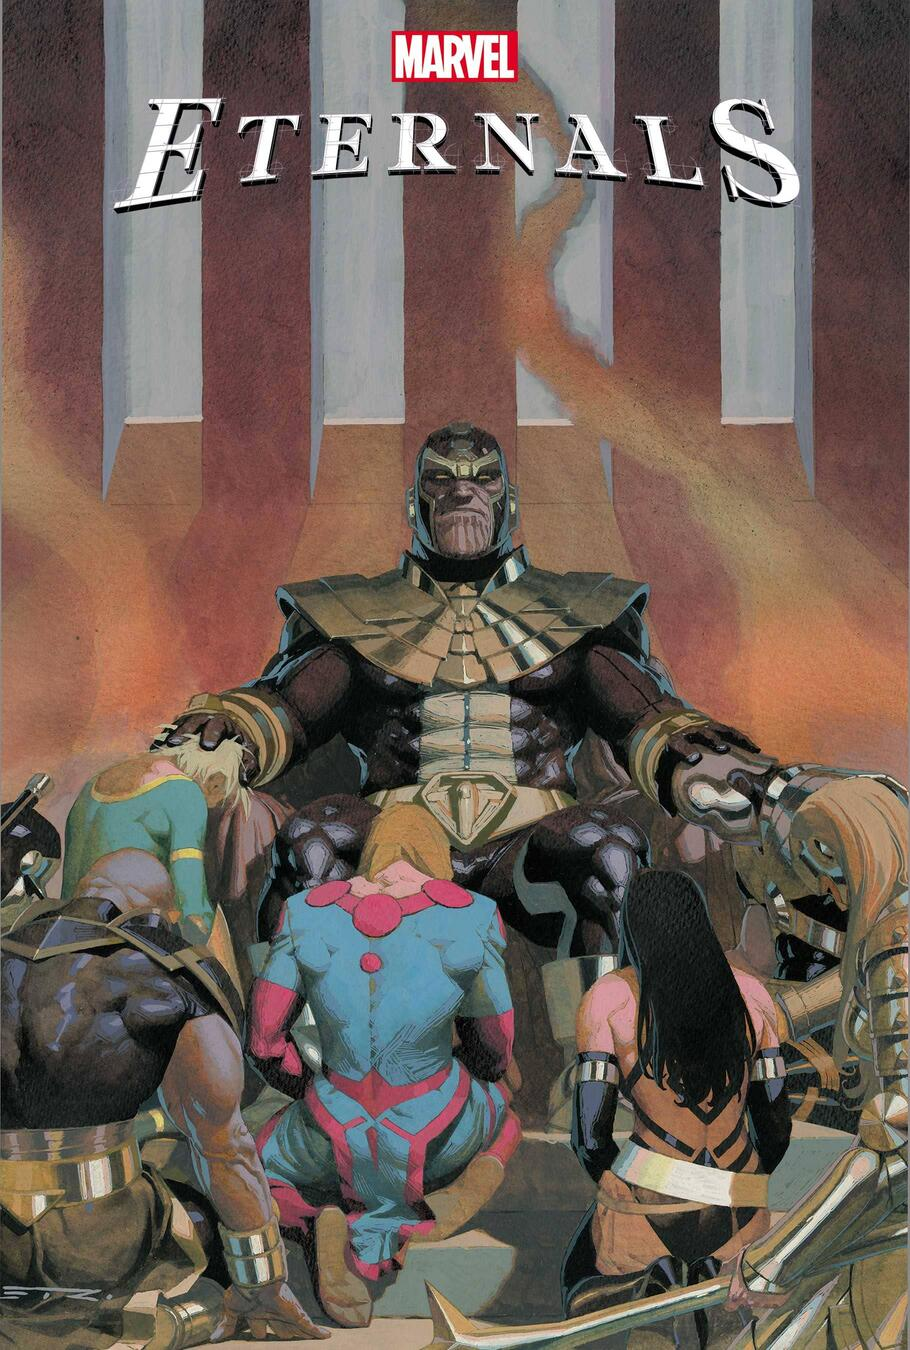 ETERNALS #7 cover by Esad Ribic